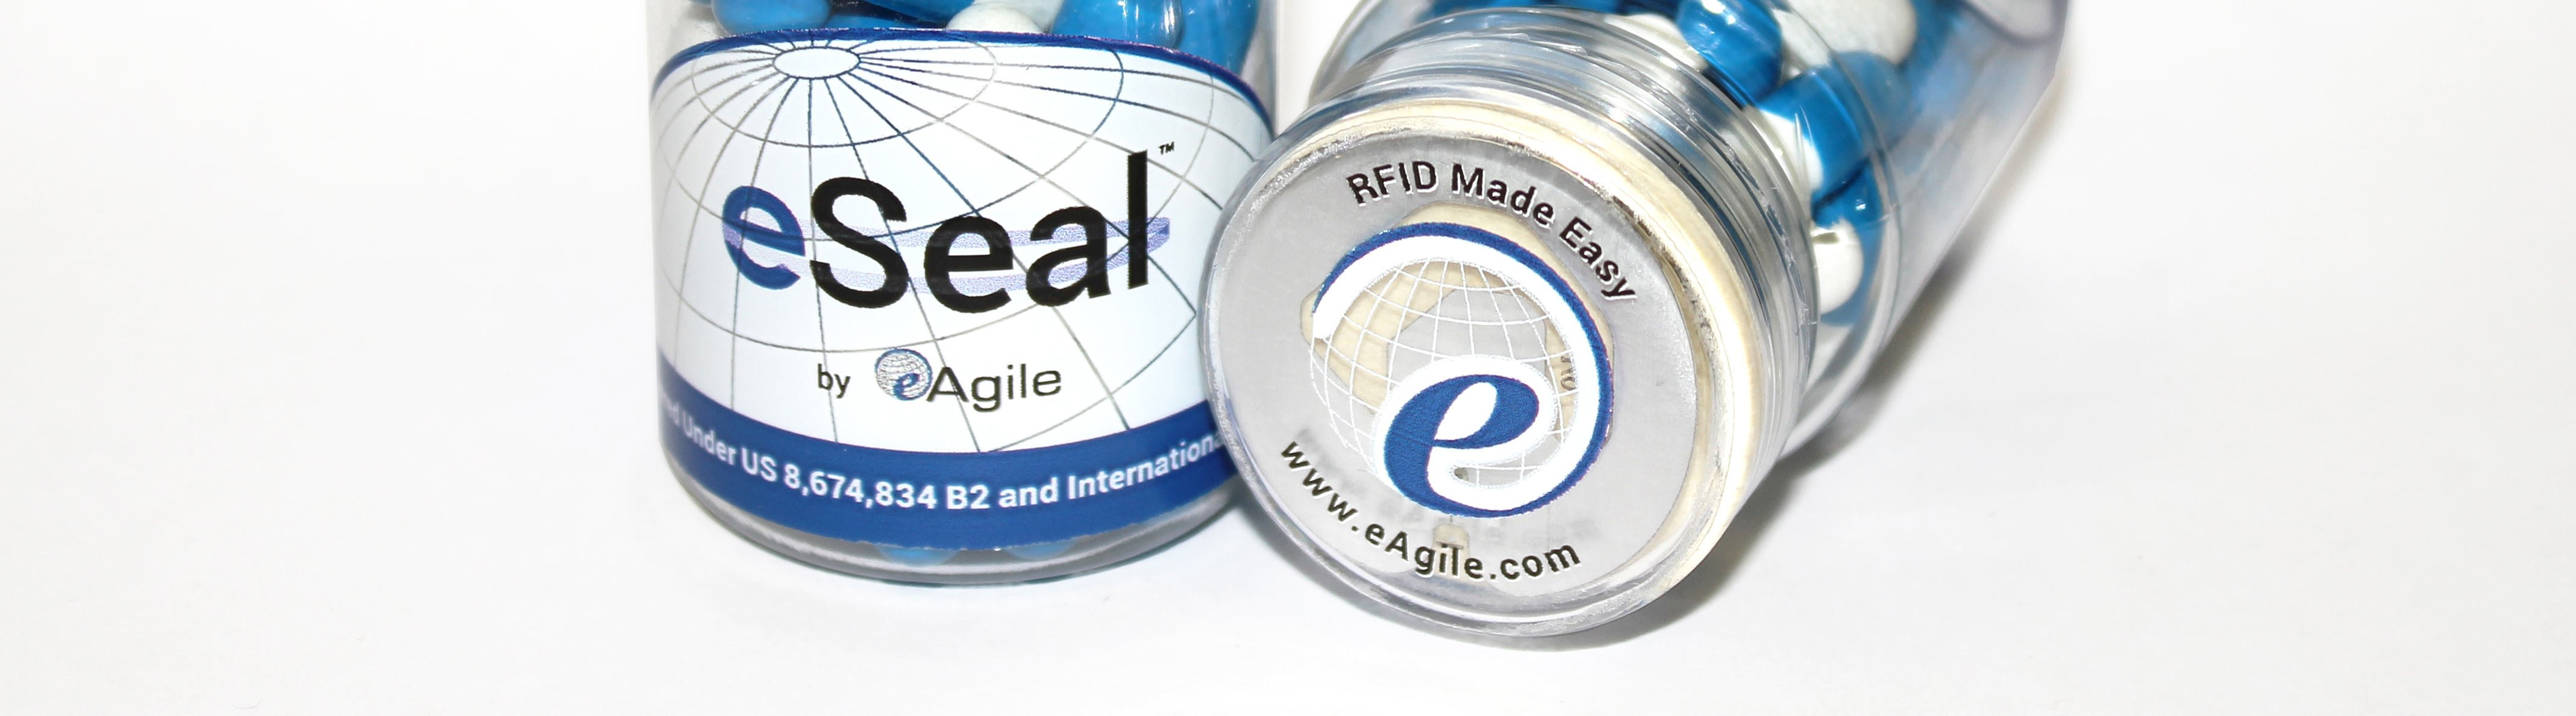 eSeal RFID smart packaging solution from eAgile